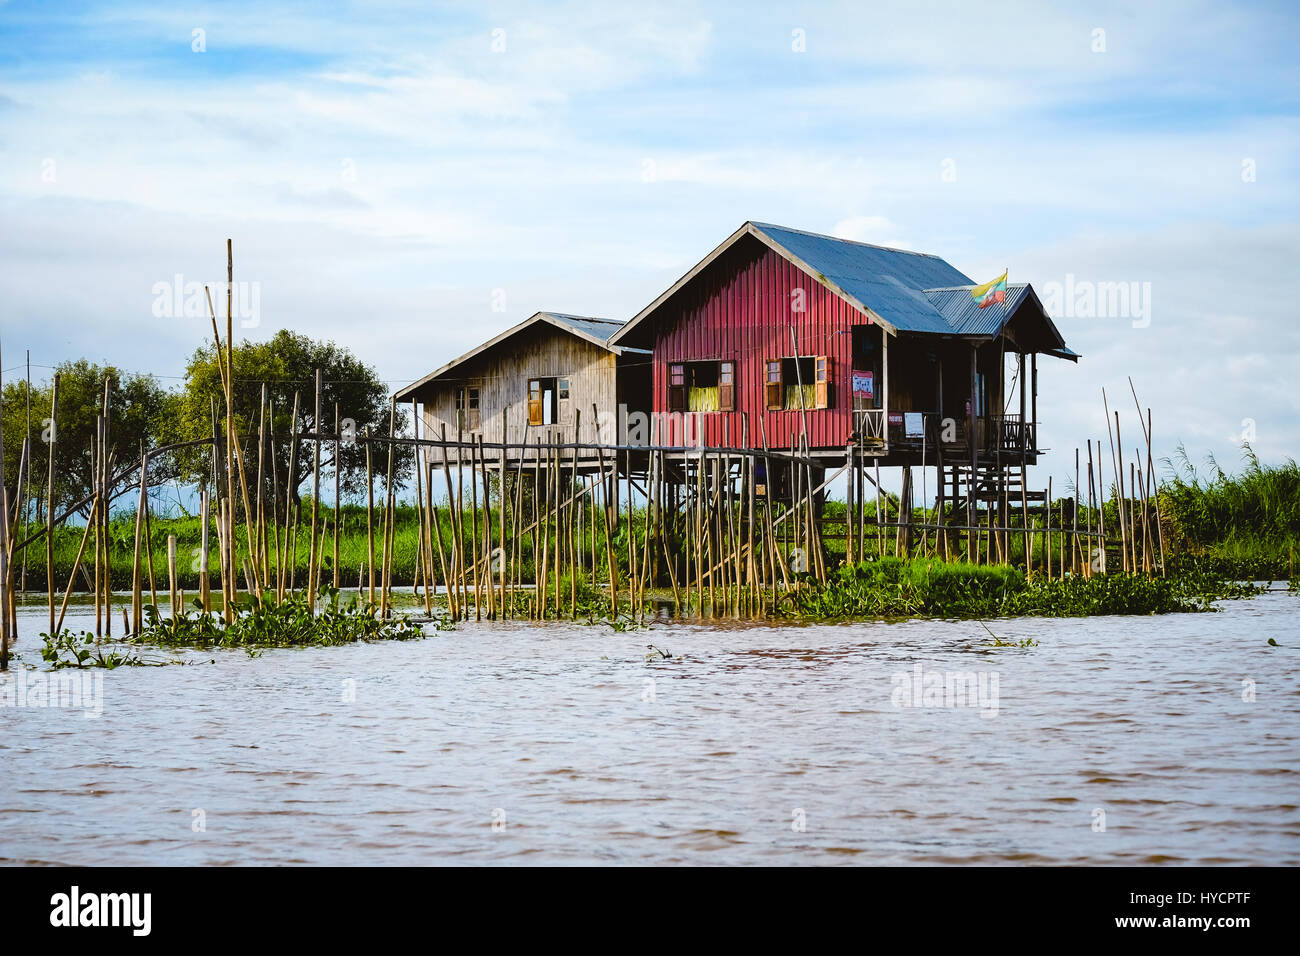 Landscape view of traditional wooden houses on Inle lake, Myanmar (Burma) - Stock Image